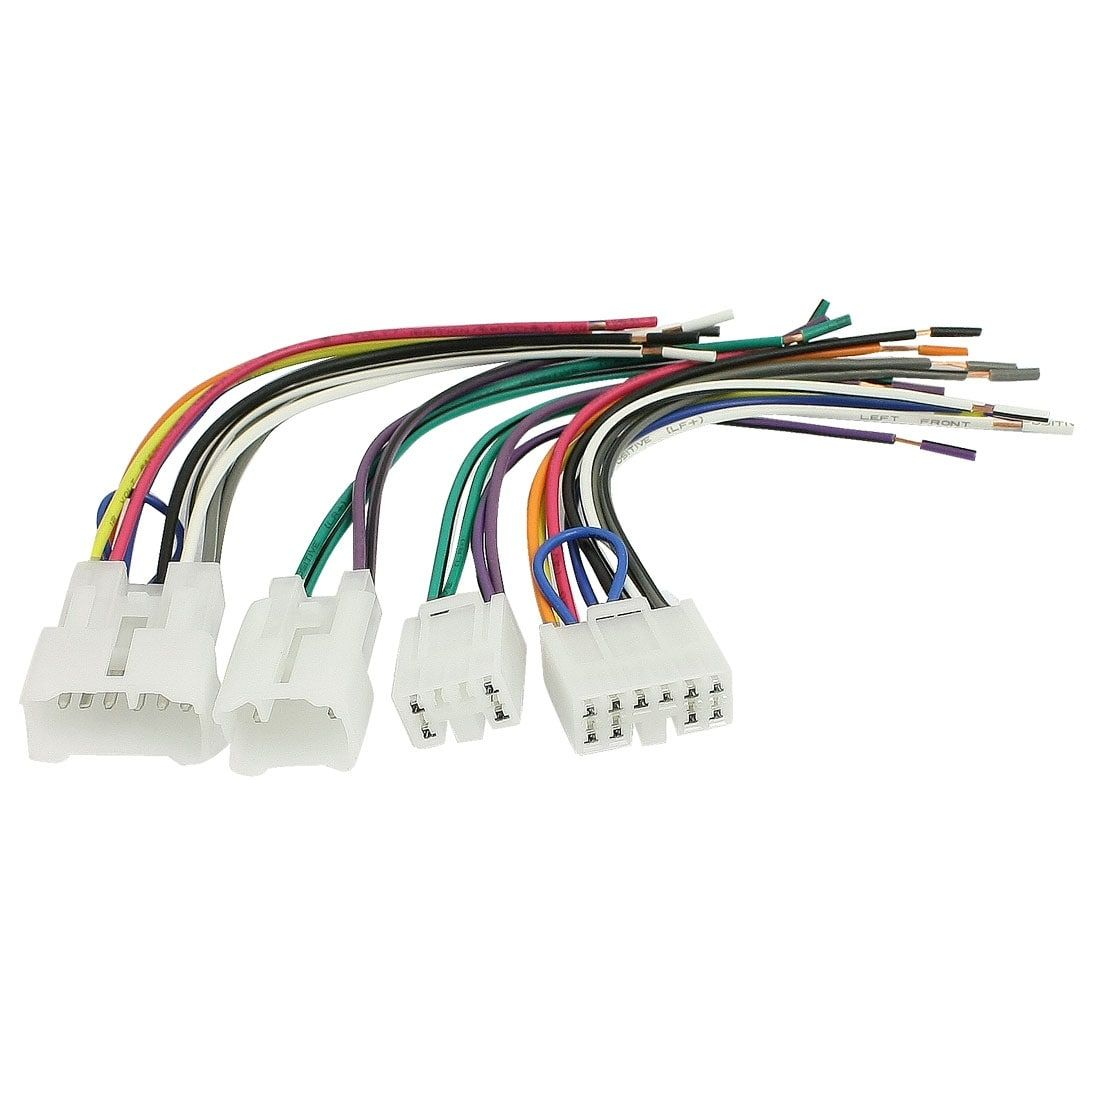 medium resolution of unique bargains unique bargains 4 pcs car dvd gps wire wiring harness set for toyota corolla crown camey